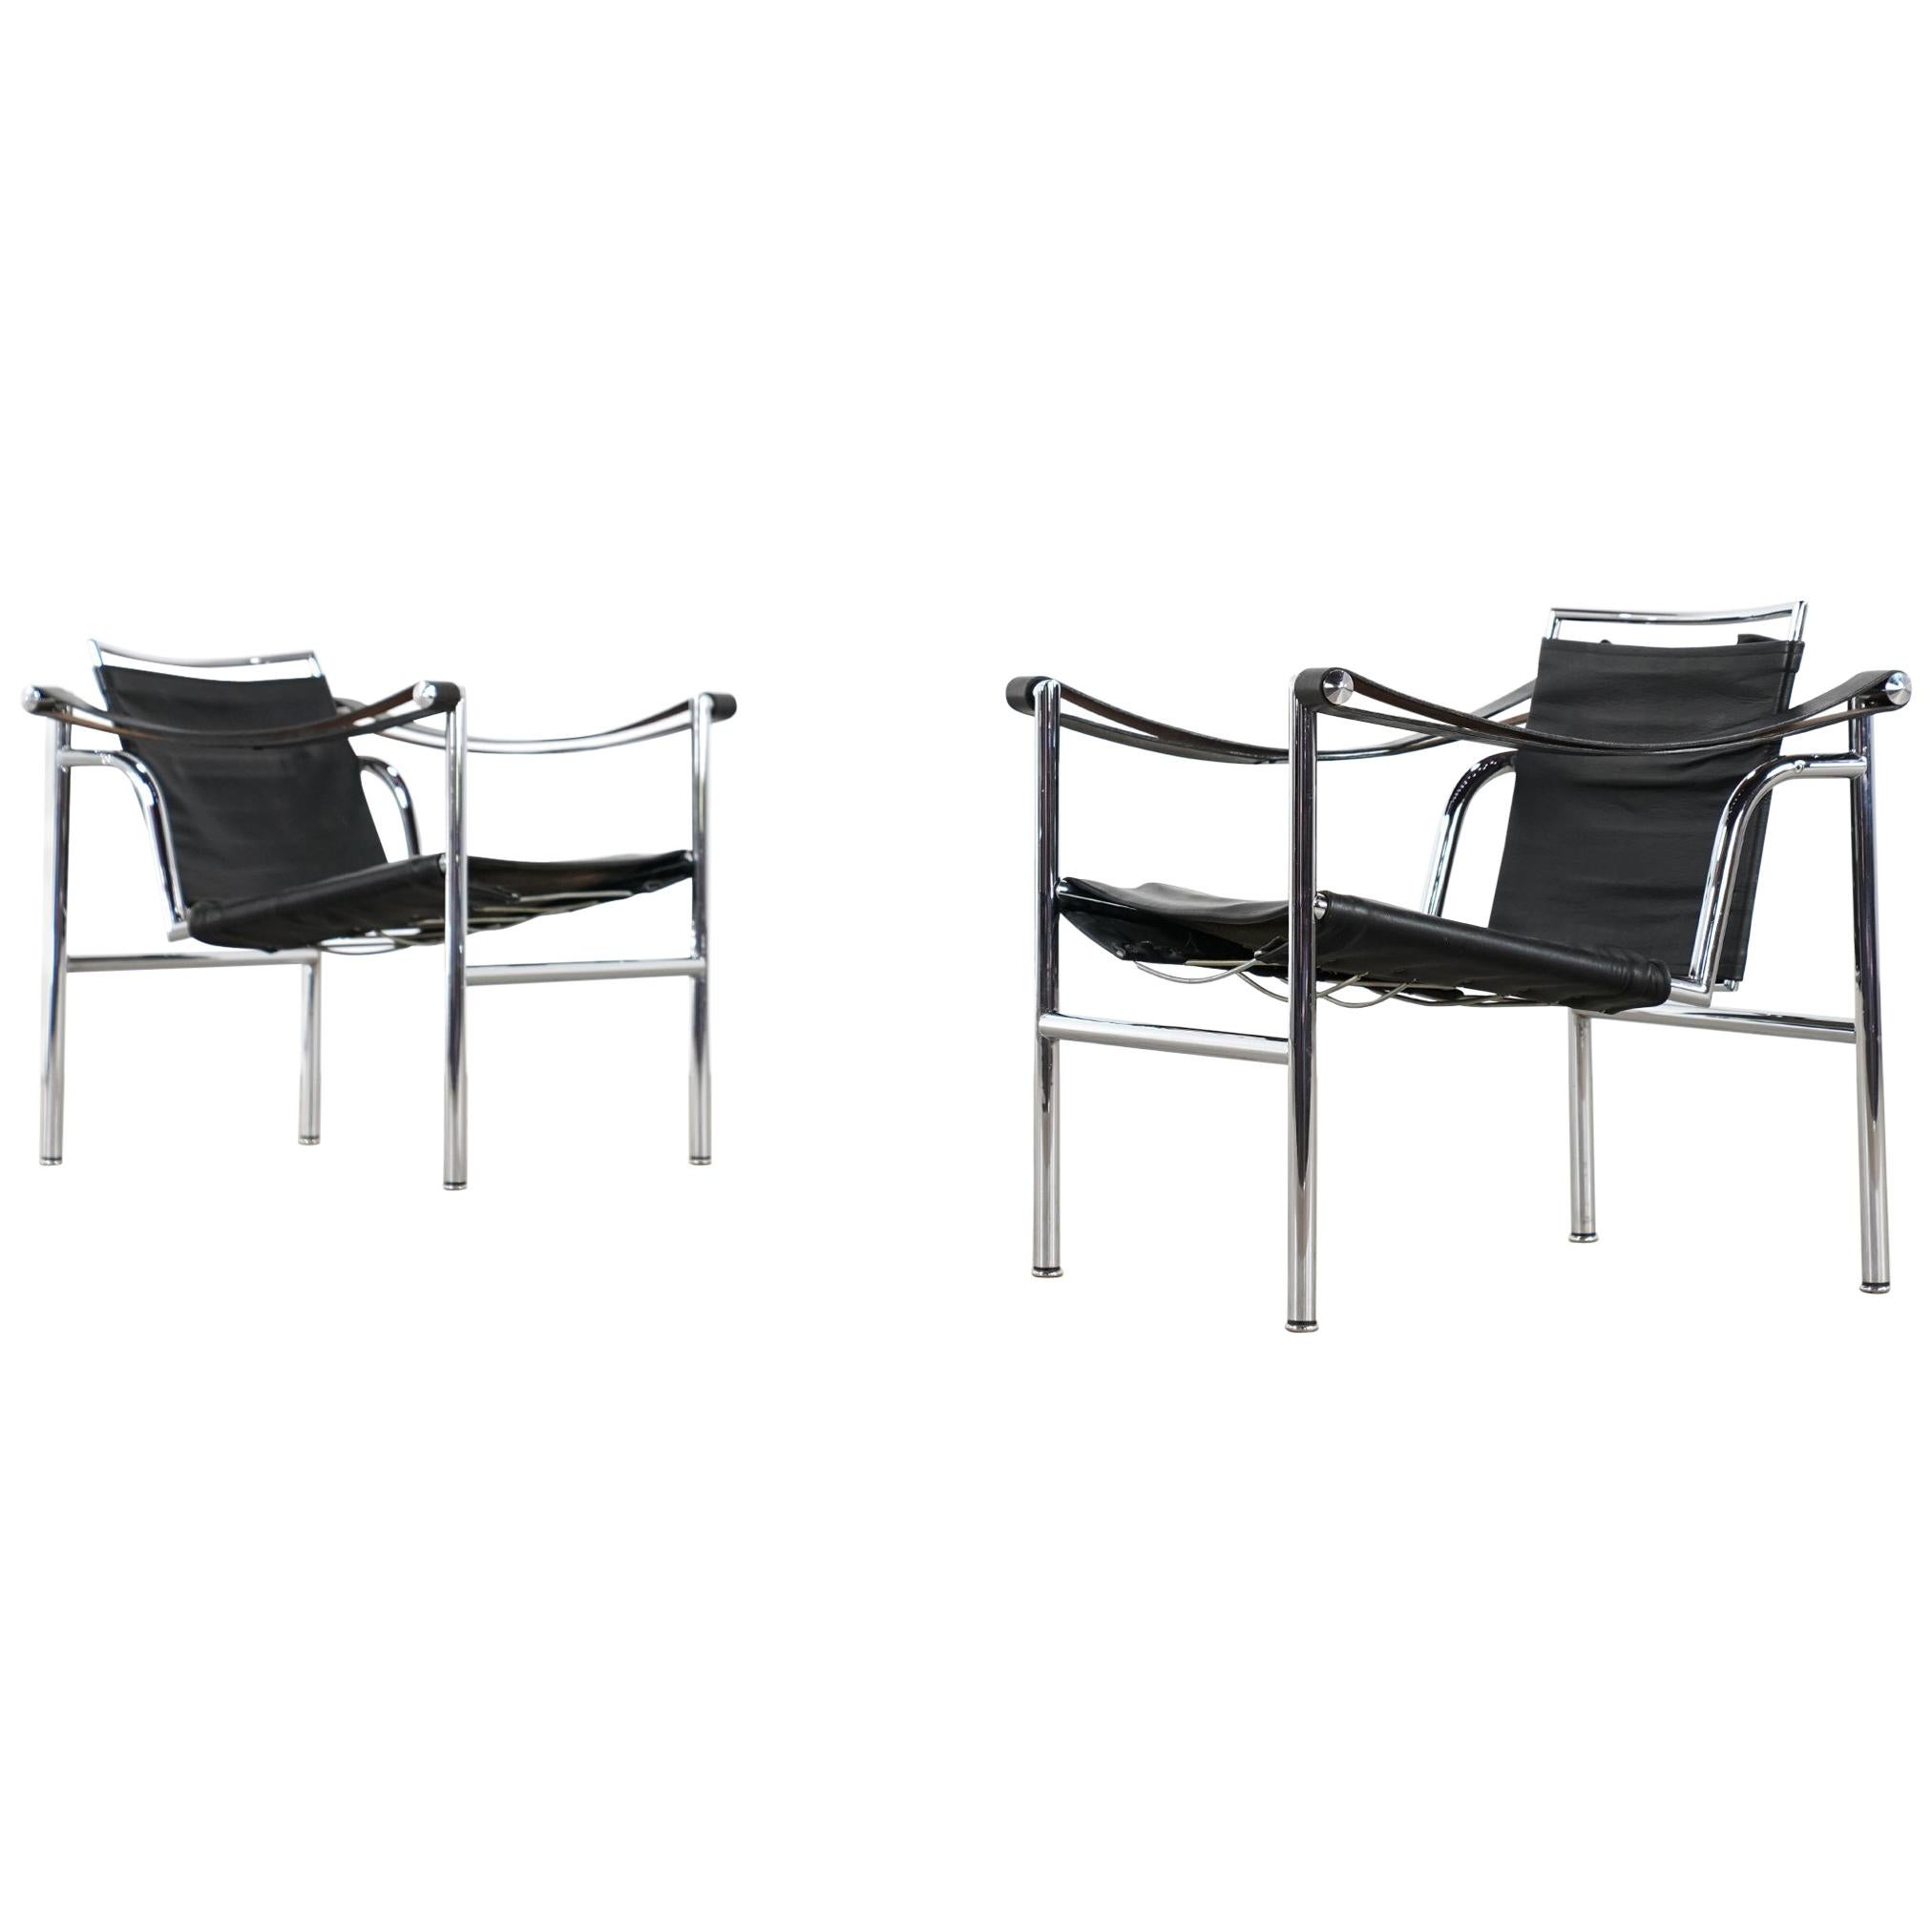 Ordinaire N° 175 / 176 Early / 2x Le Corbusier, P. Jeanneret U0026 Ch. Perriand LC1 Chair